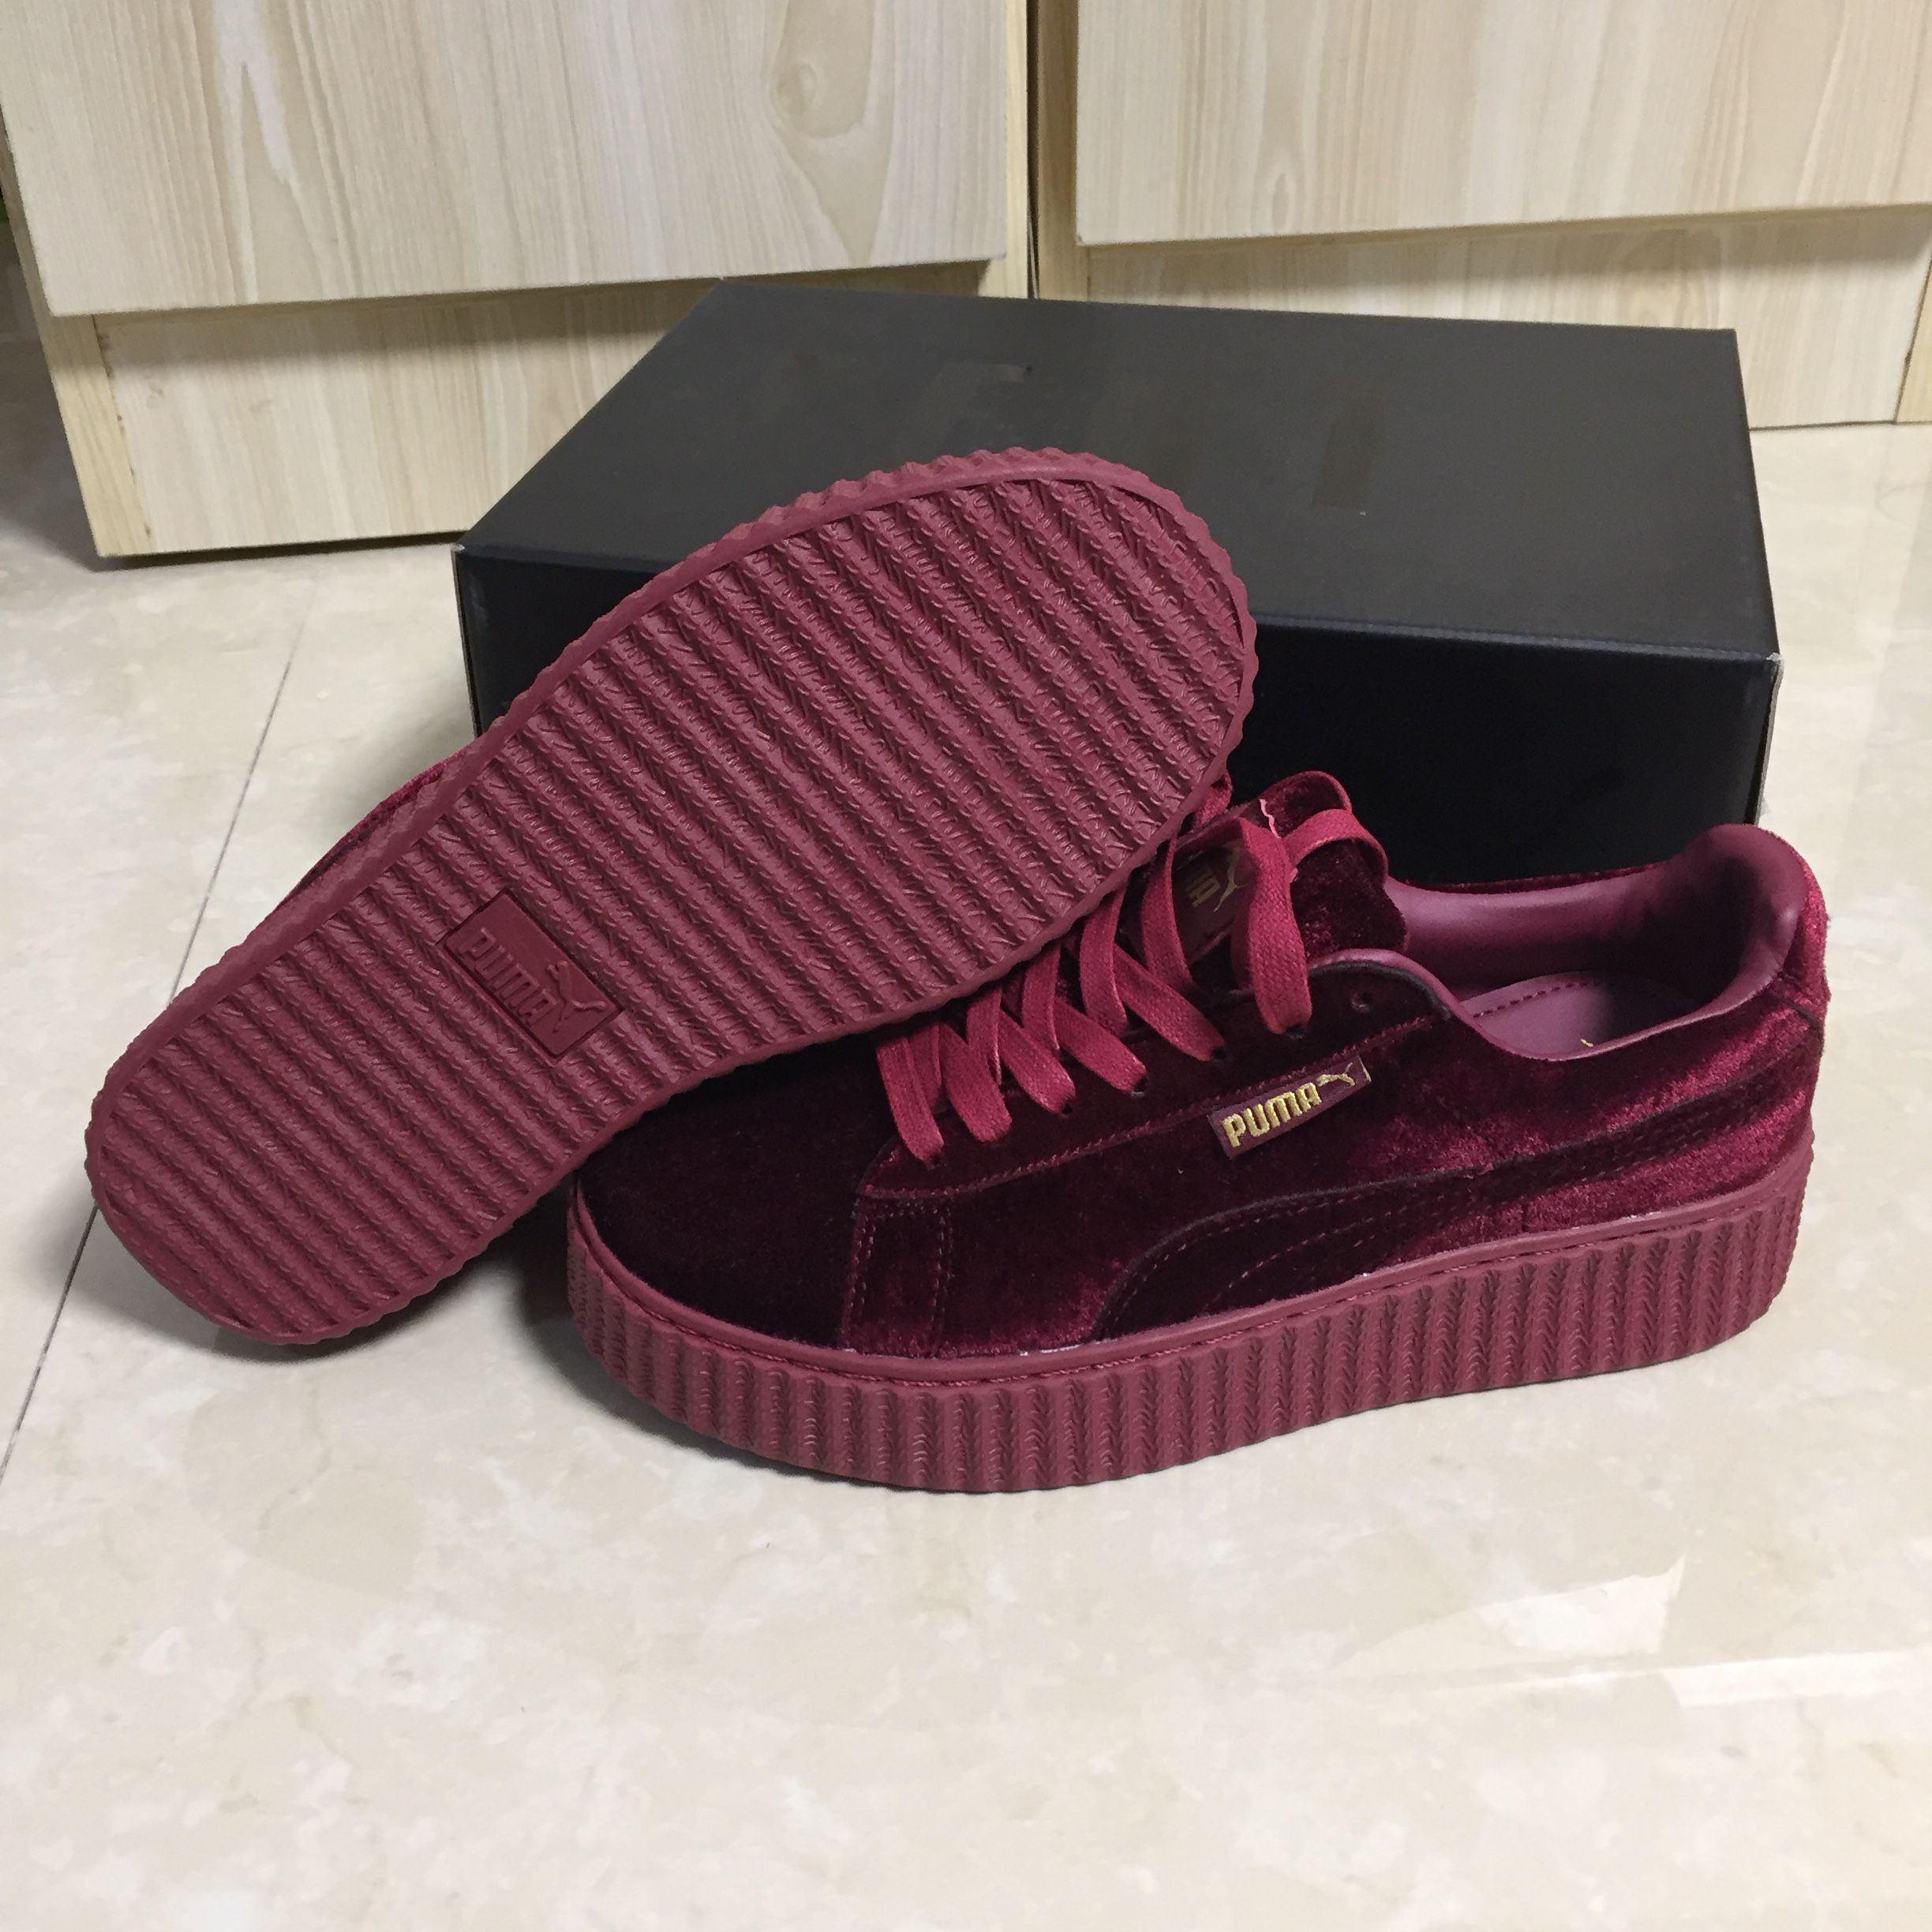 official photos 23dd1 0b1c4 Puma creeper red velvet Maroon:topkickss.com | Wear com...50 ...